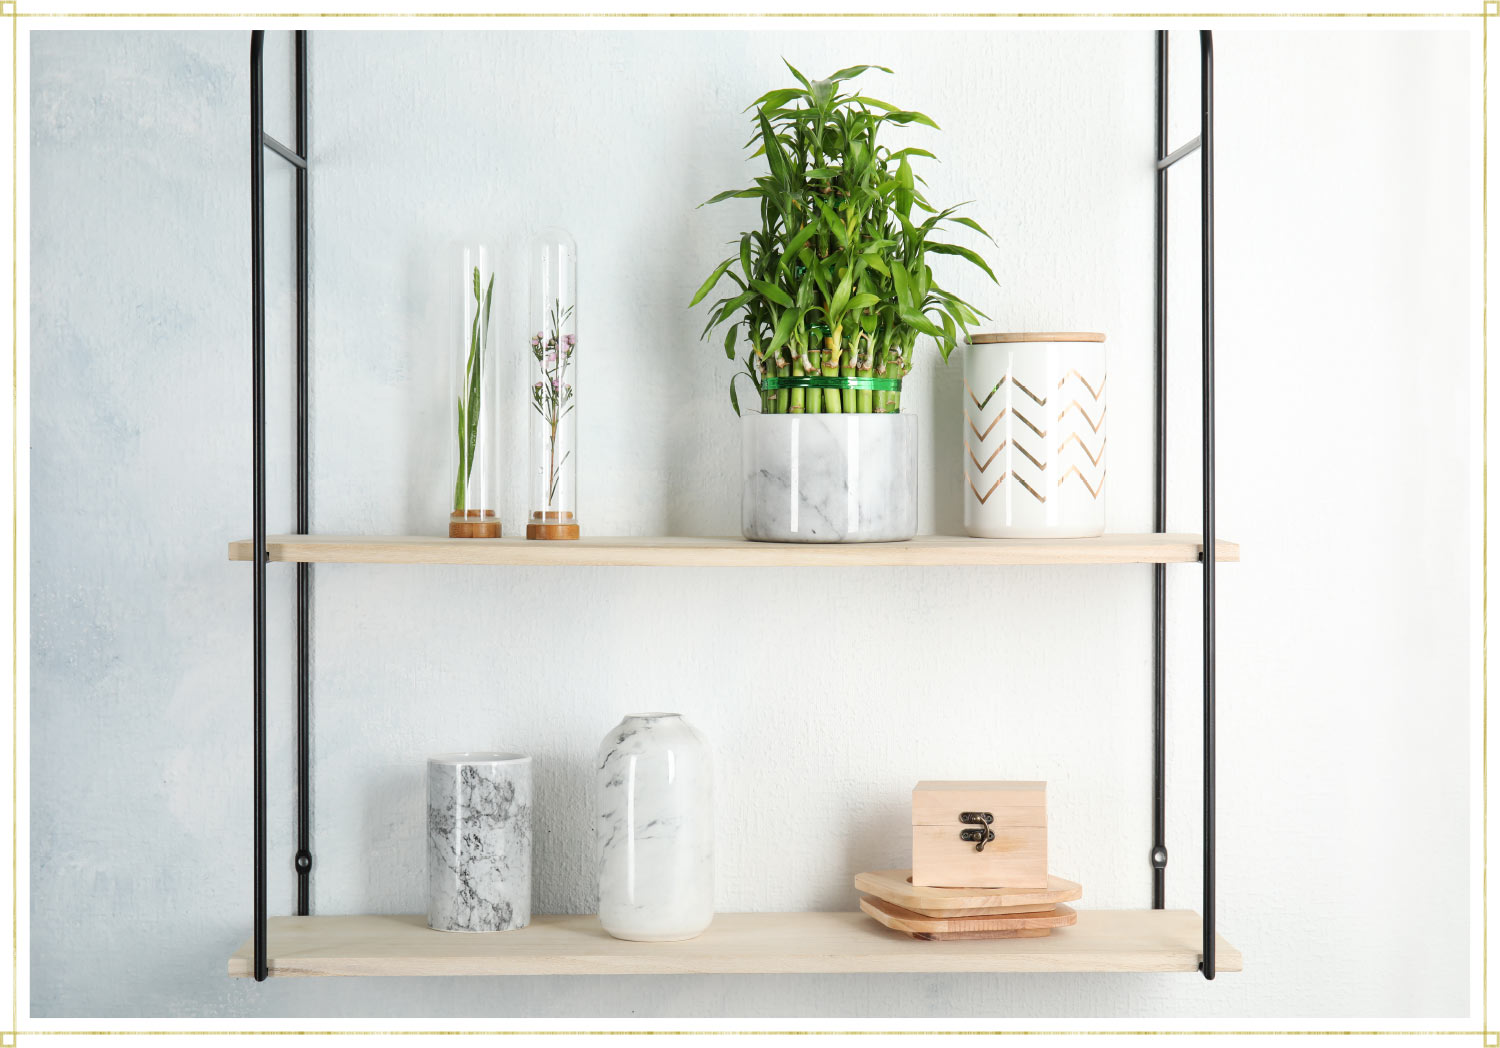 a shelving unit with a marble pot and bamboo inside and a white decorative jar and two dried flowers. The bottom shelf has two glass jars.